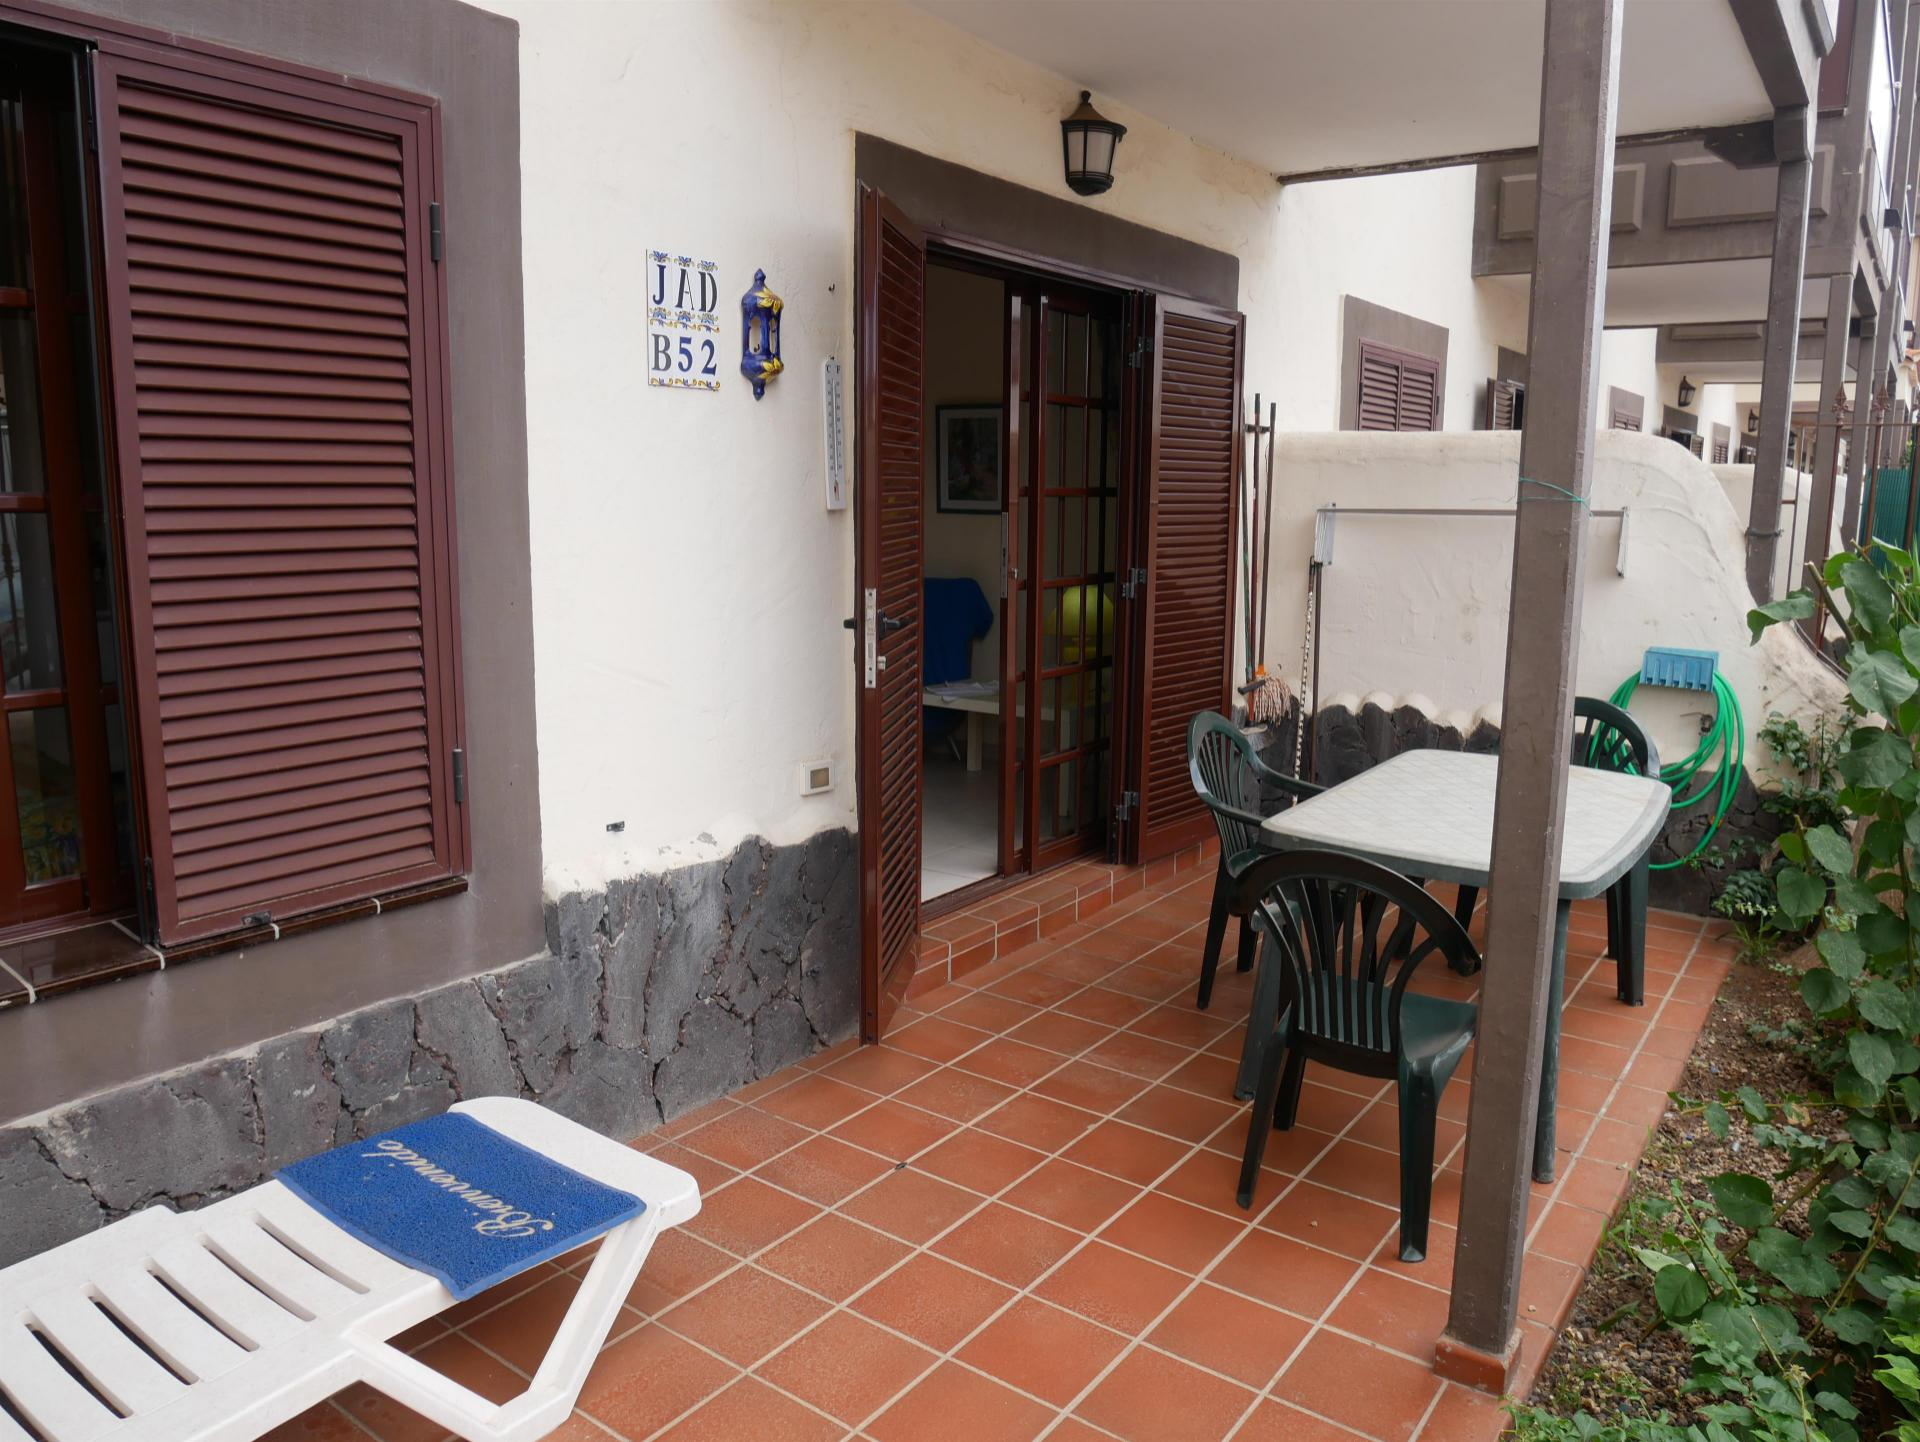 1 bedroom apartment located on the ground floor in the complex Balcon del Mar.The .... more info